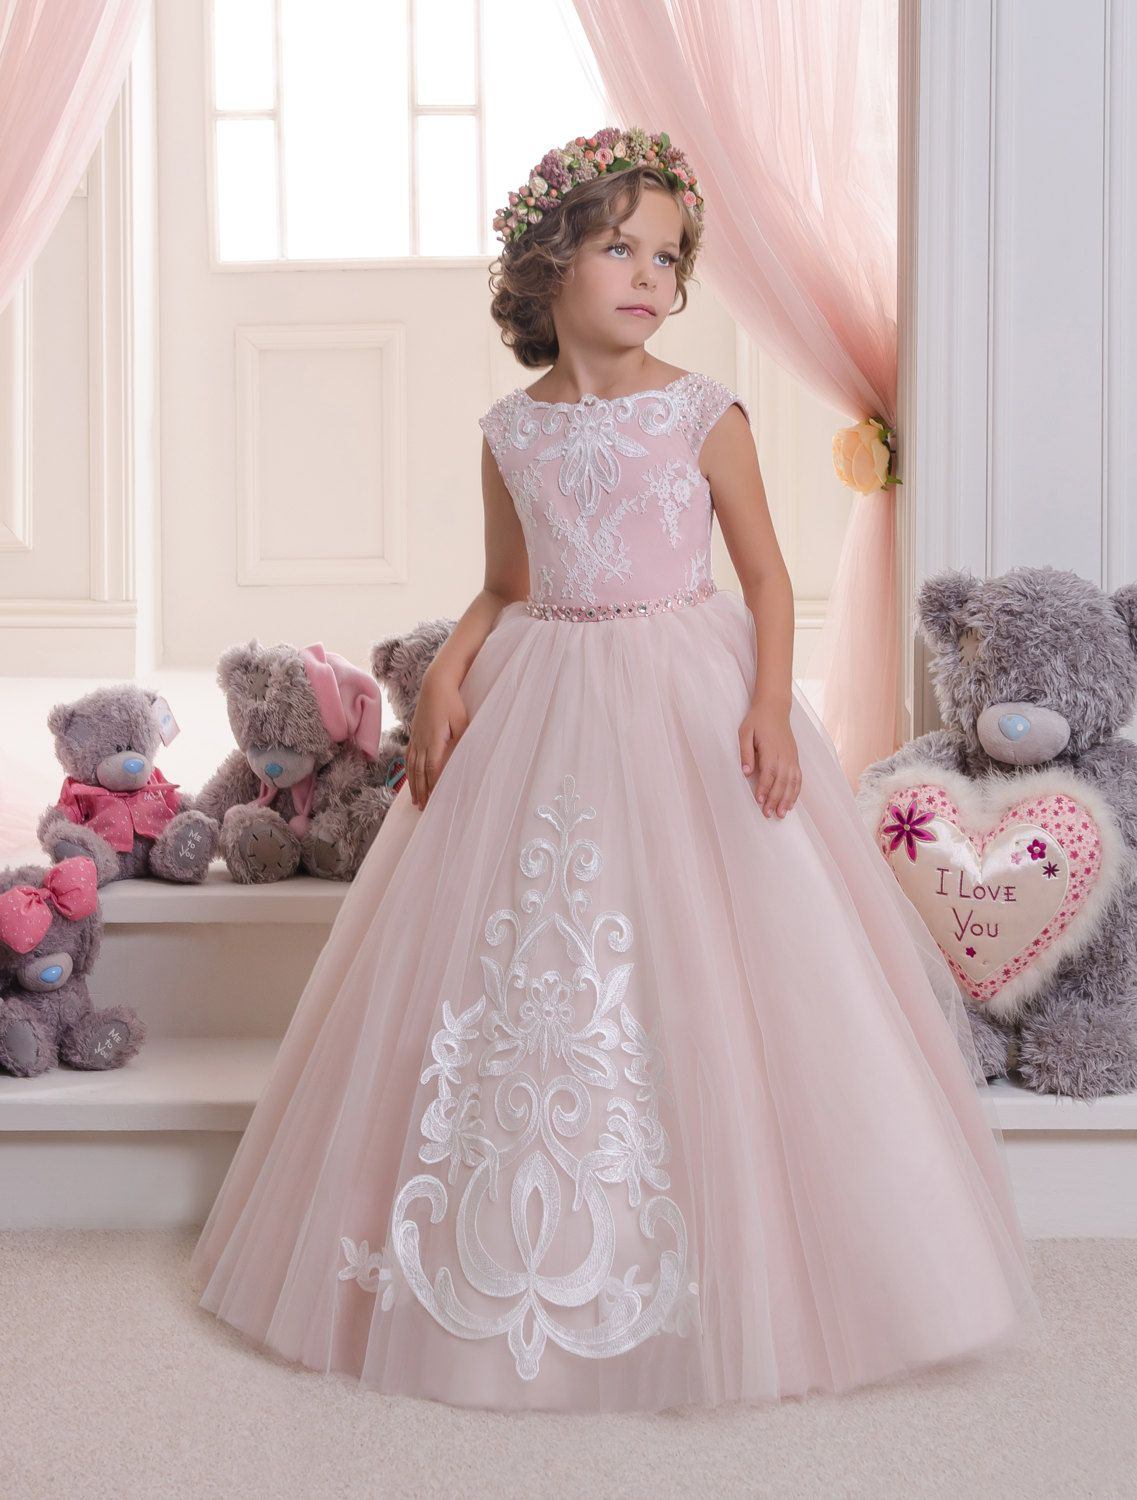 55795fa1263 Blush Pink Lace Tulle Flower Girl Dress - Wedding party Holiday ...